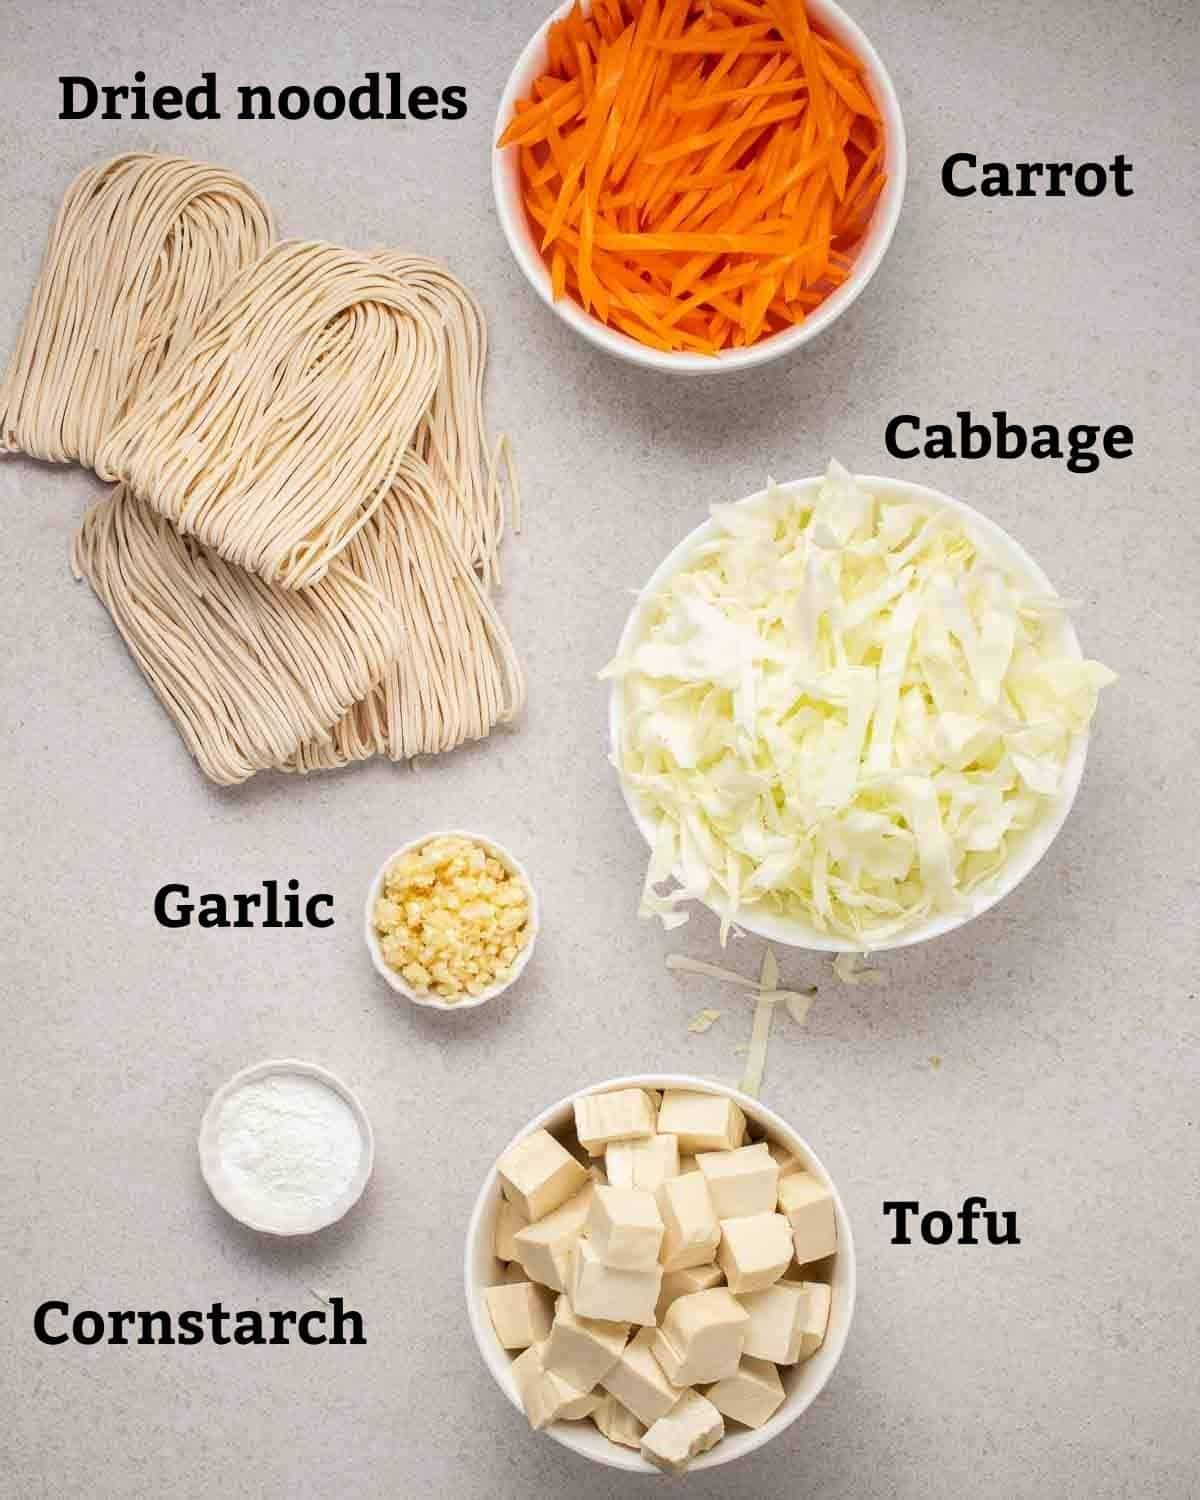 Ingredients needed for peanut noodles like dried noodles, garlic, tofu, cornstarch and vegetables on a grey background.